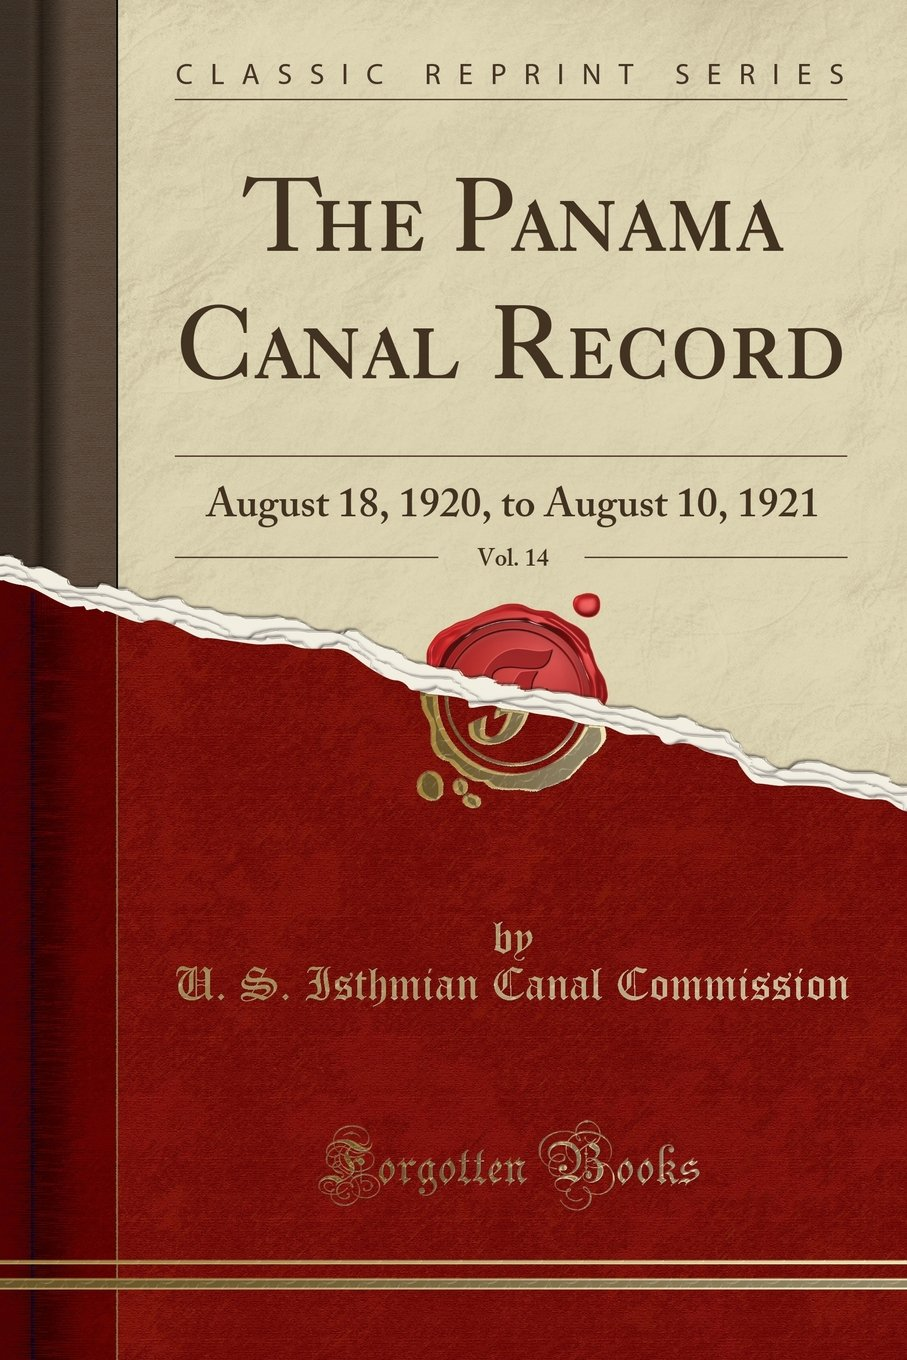 The Panama Canal Record, Vol. 14: August 18, 1920, to August 10, 1921 (Classic Reprint) pdf